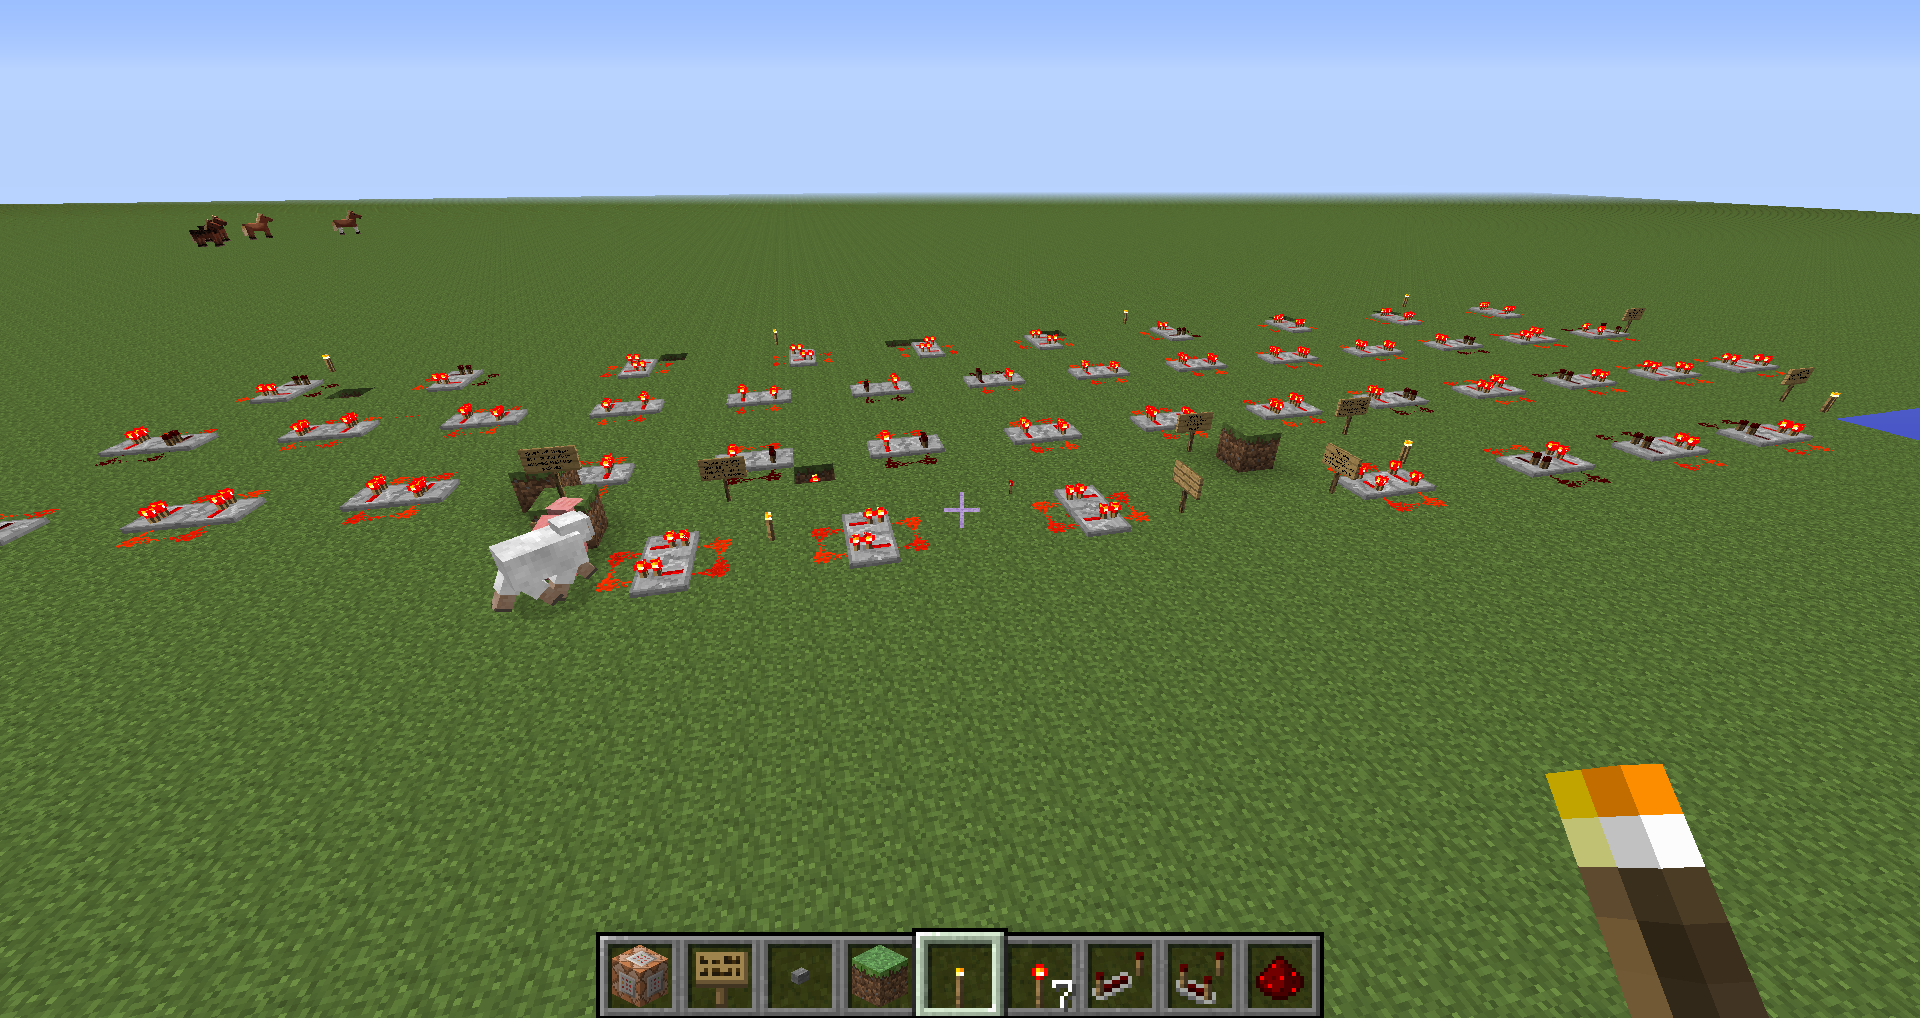 Mc 711 Tile Ticks Of Connected Redstone Components Might Be Related To Minecraft How Create A Repeating Circuit 14w21b Worldmc Bug Testzip After Tp